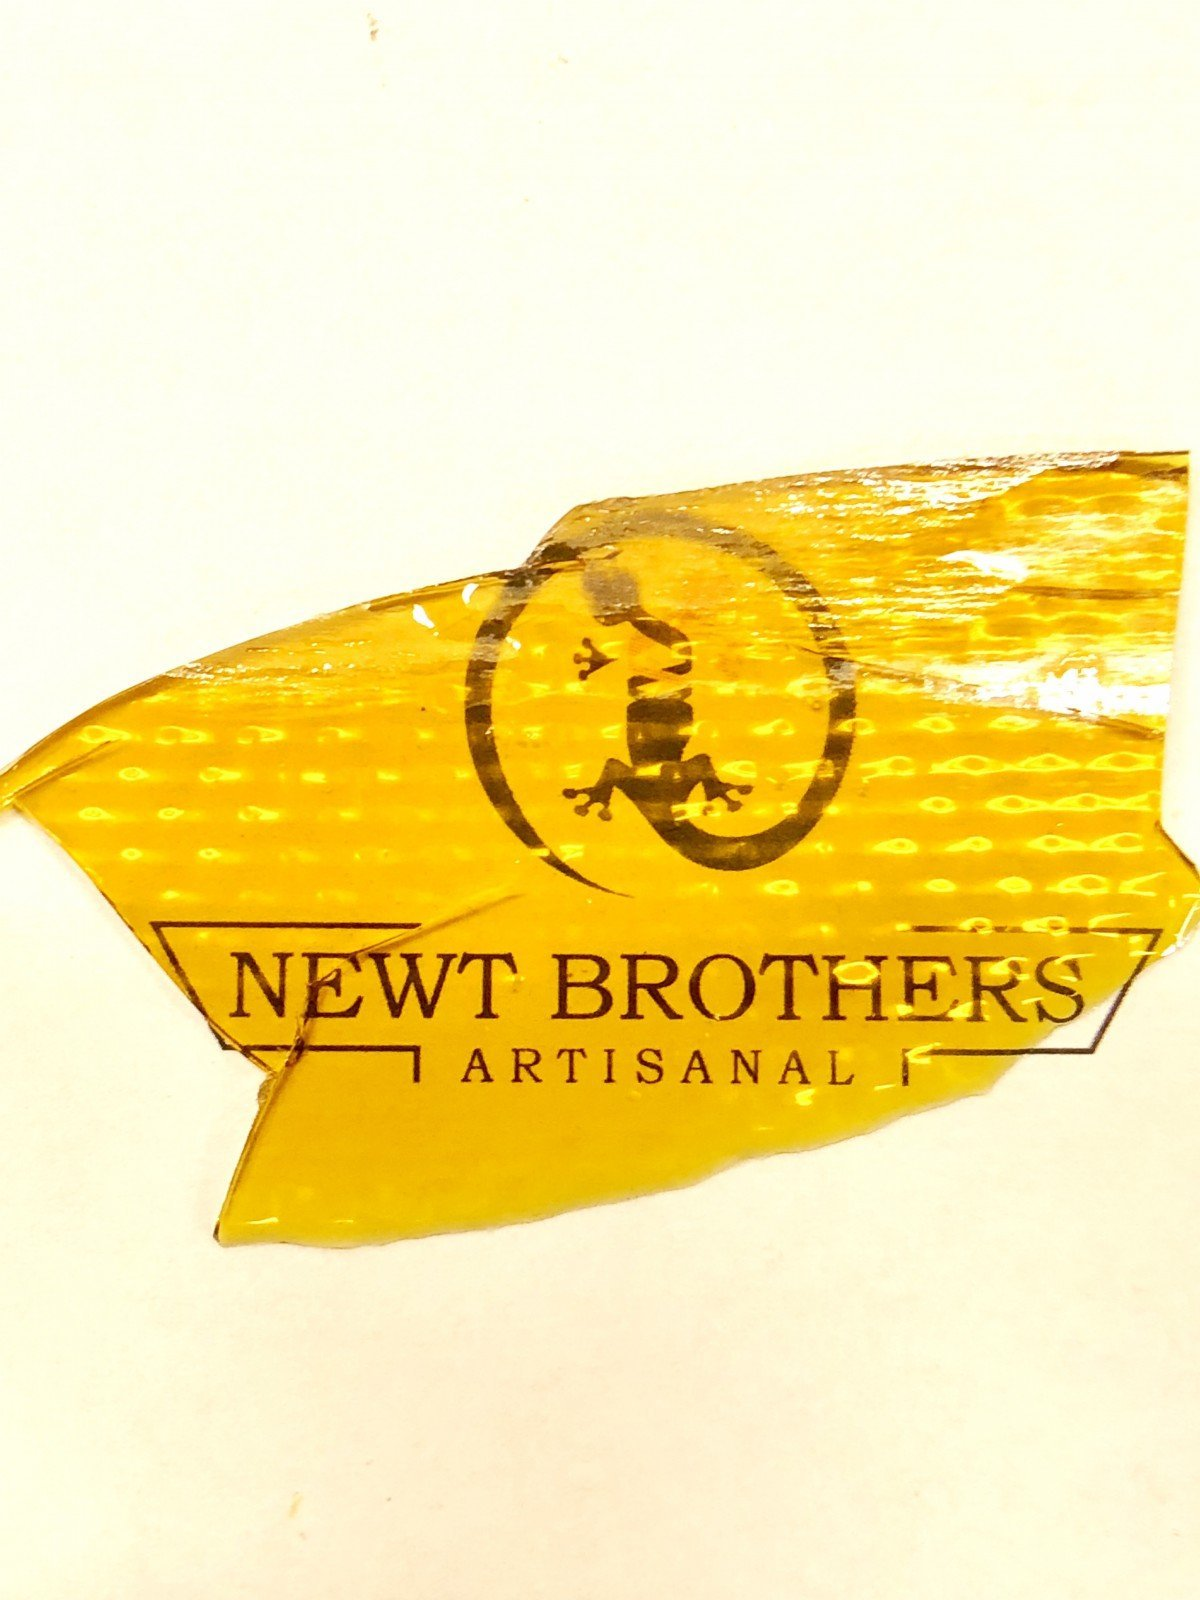 Newt Brothers Cannabis Concentrates and Edibles at Dank Dispensary